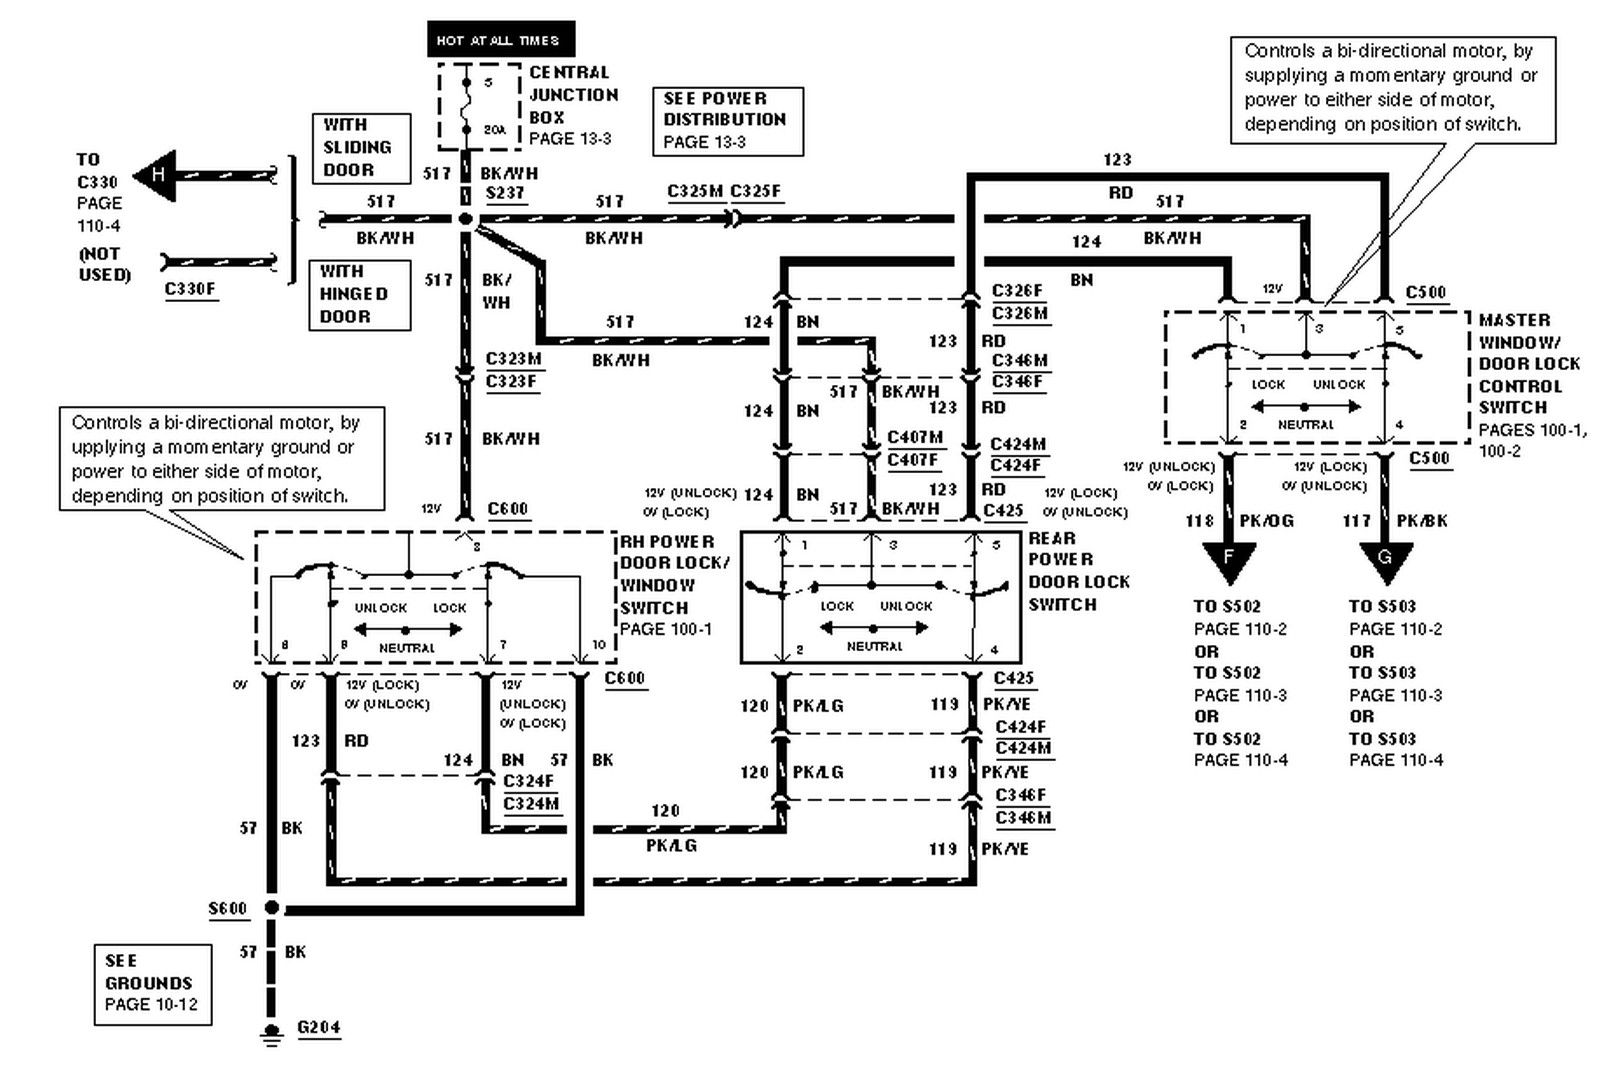 80 2010_11_05_235941_99_e_350_power_door_lock_wiring_diagram_e574233ae37af9677ff5fddb790386a28f9dd7ad 2011 f 150 wiring parts diagrams wiring diagram simonand right rear door wiring harness 2010 ford f150 at creativeand.co